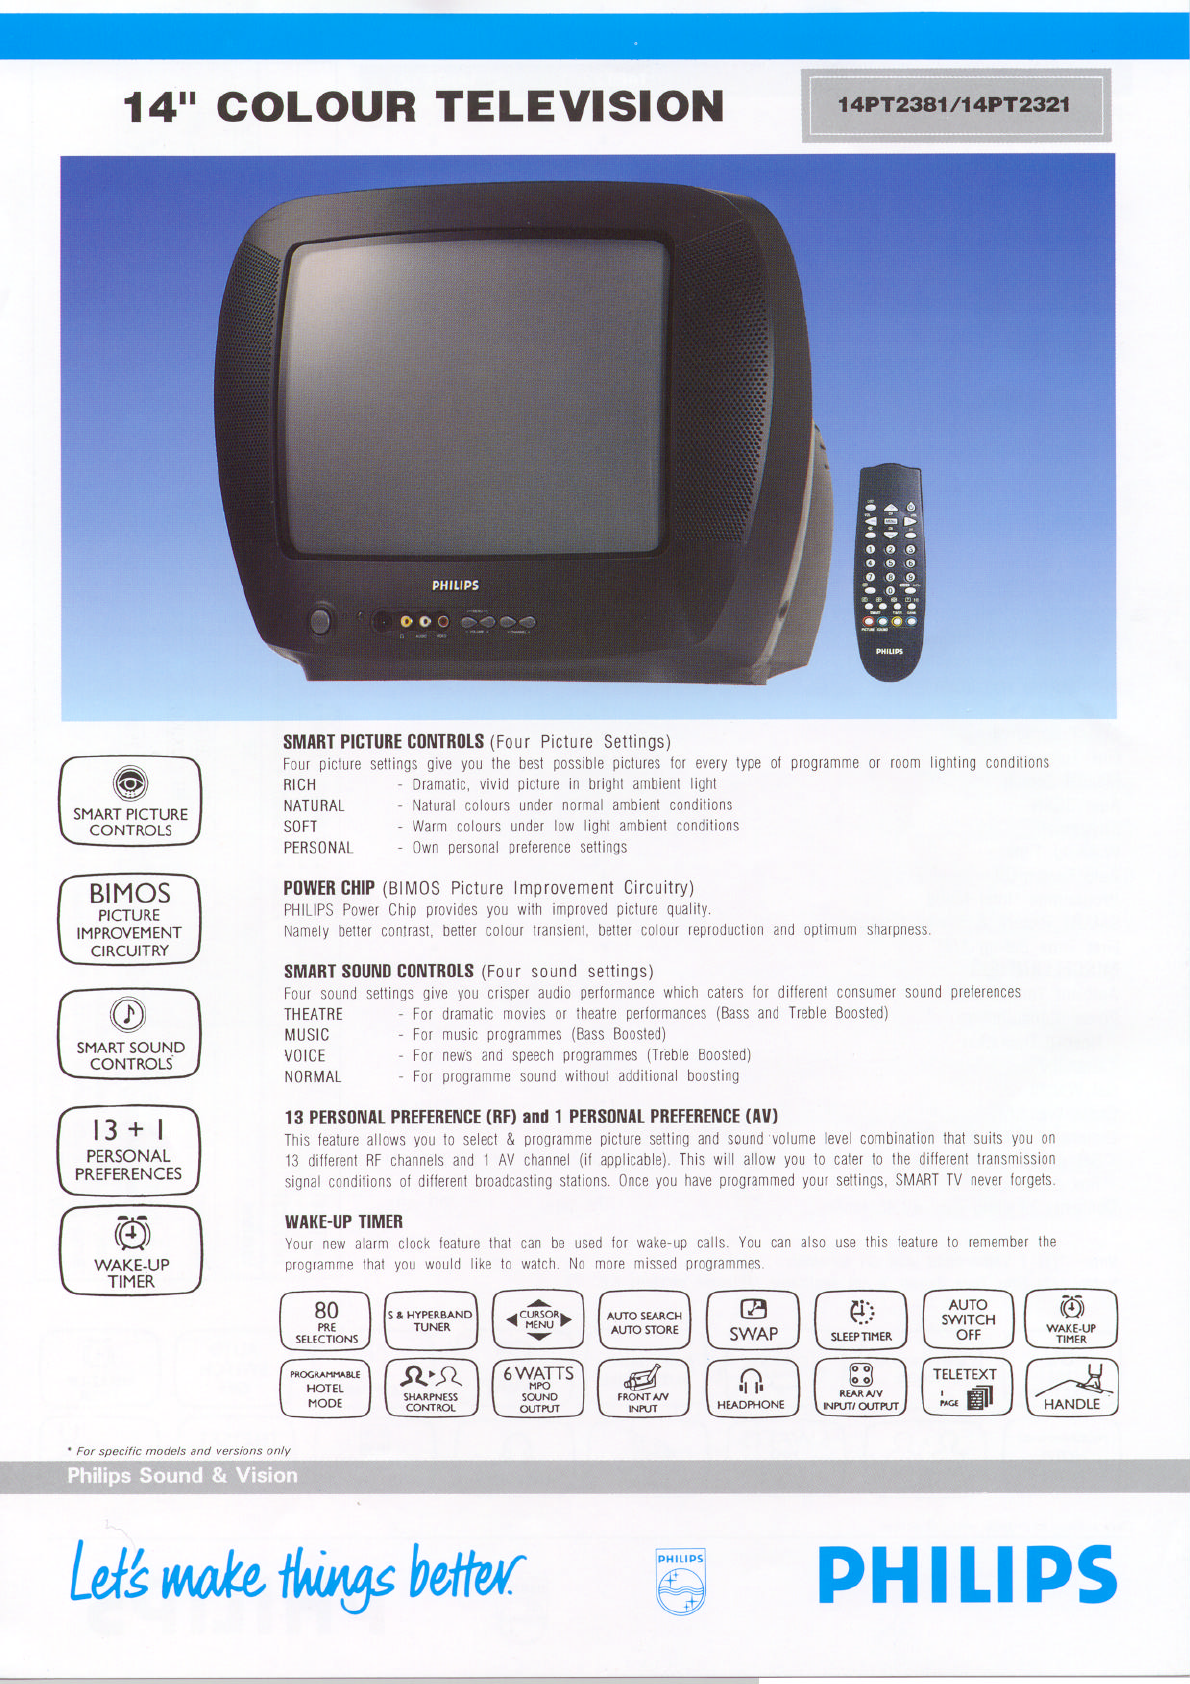 philips crt television 14pt2381 user guide manualsonline com rh tv manualsonline com Philips TV Owners ManualsOnline Philips TV Problems